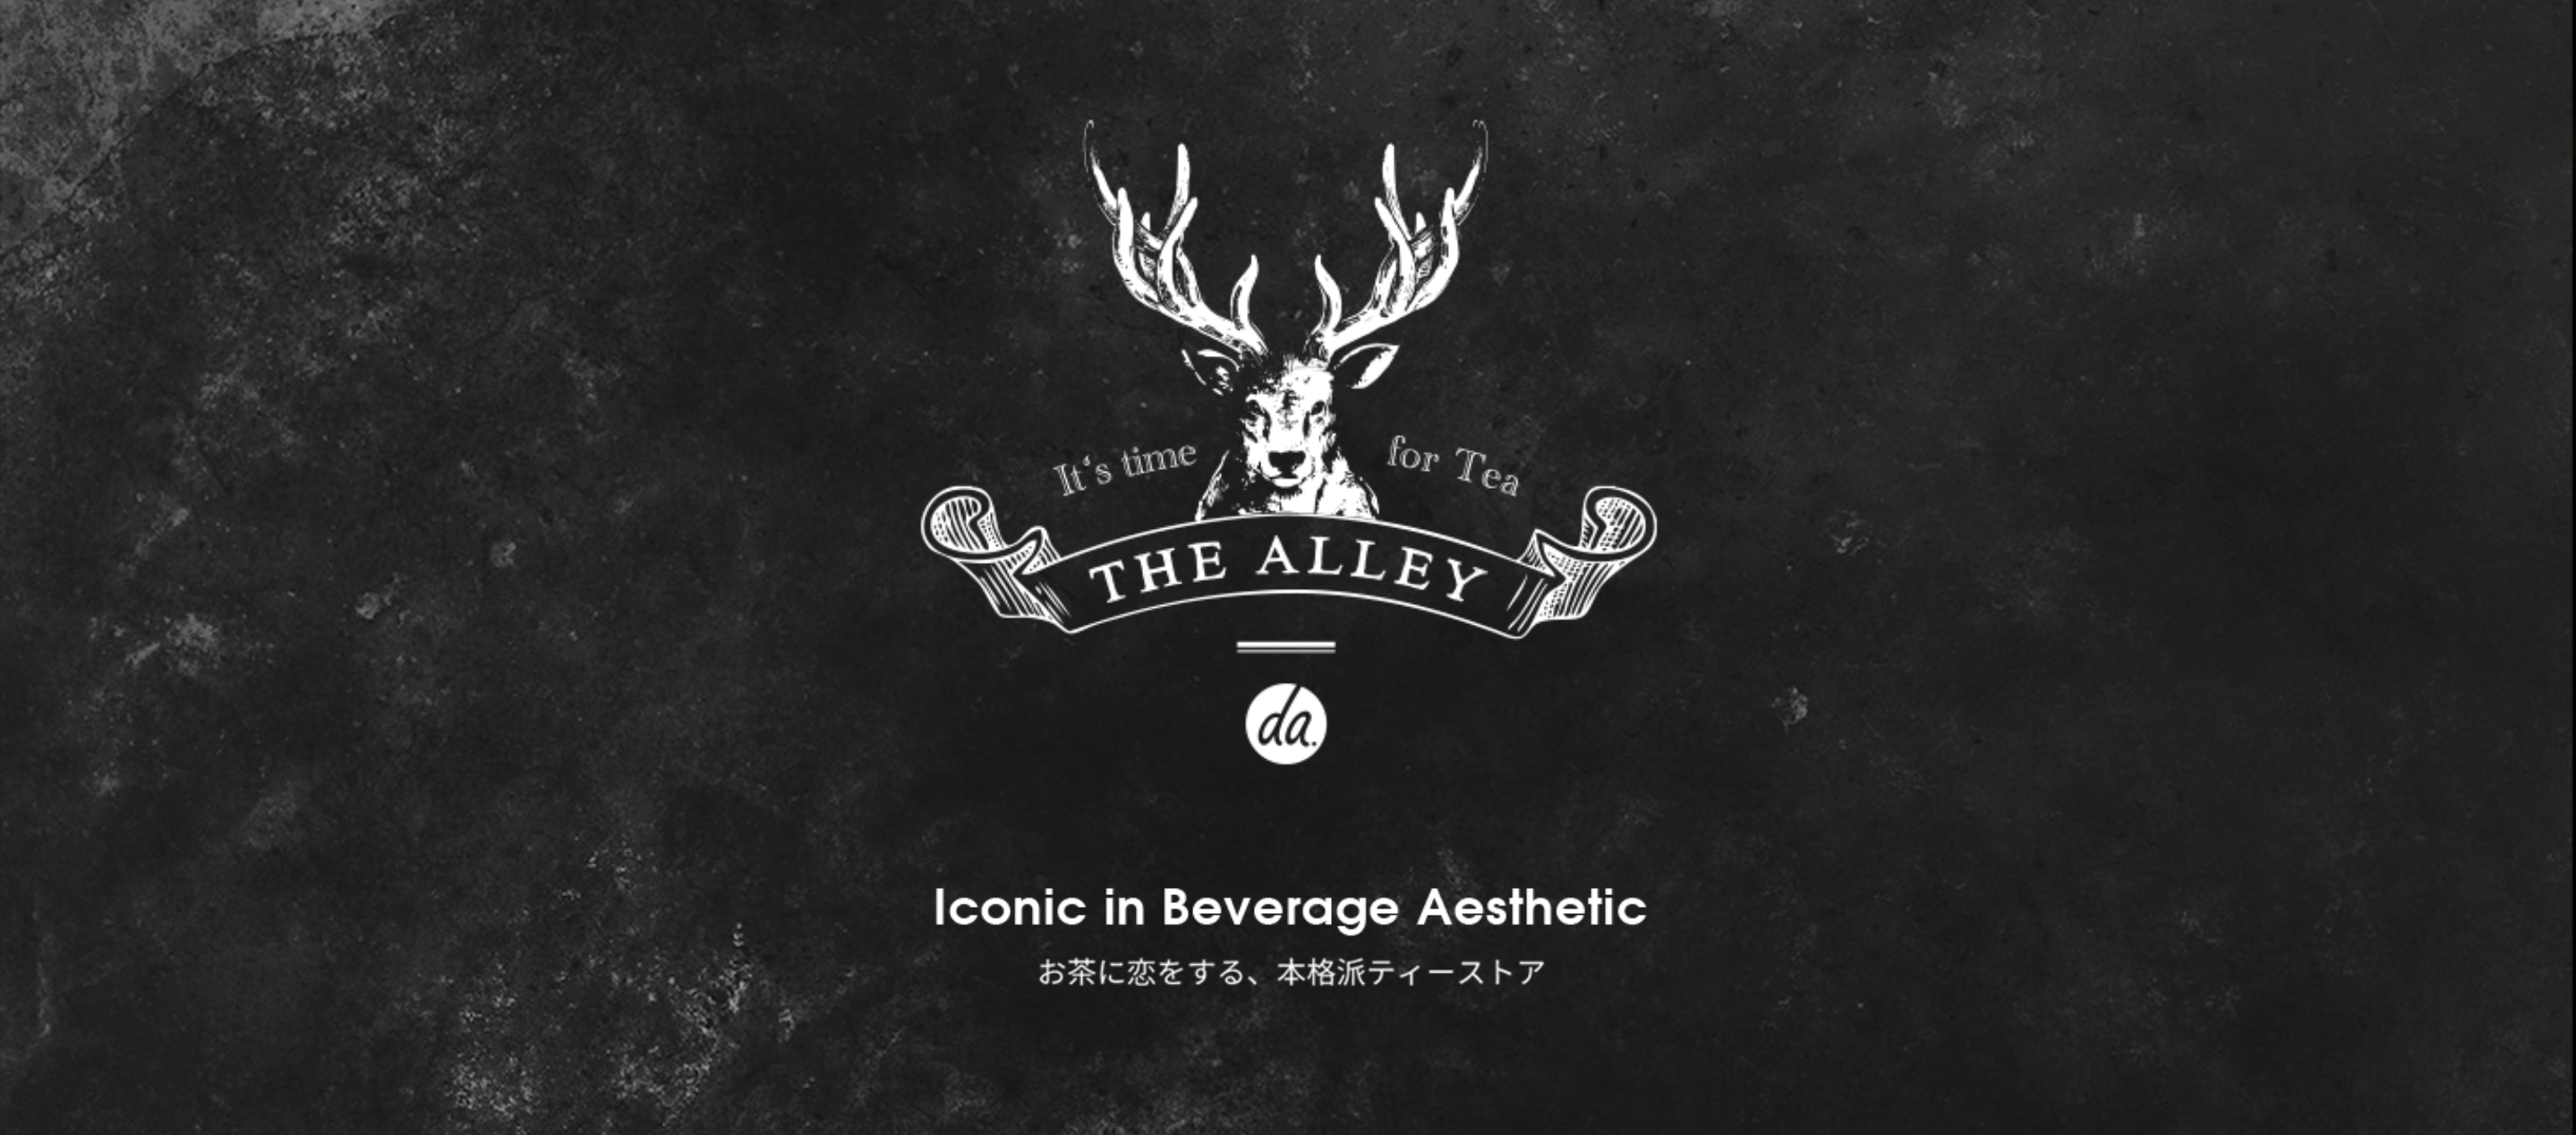 http://www.the-alley.jp